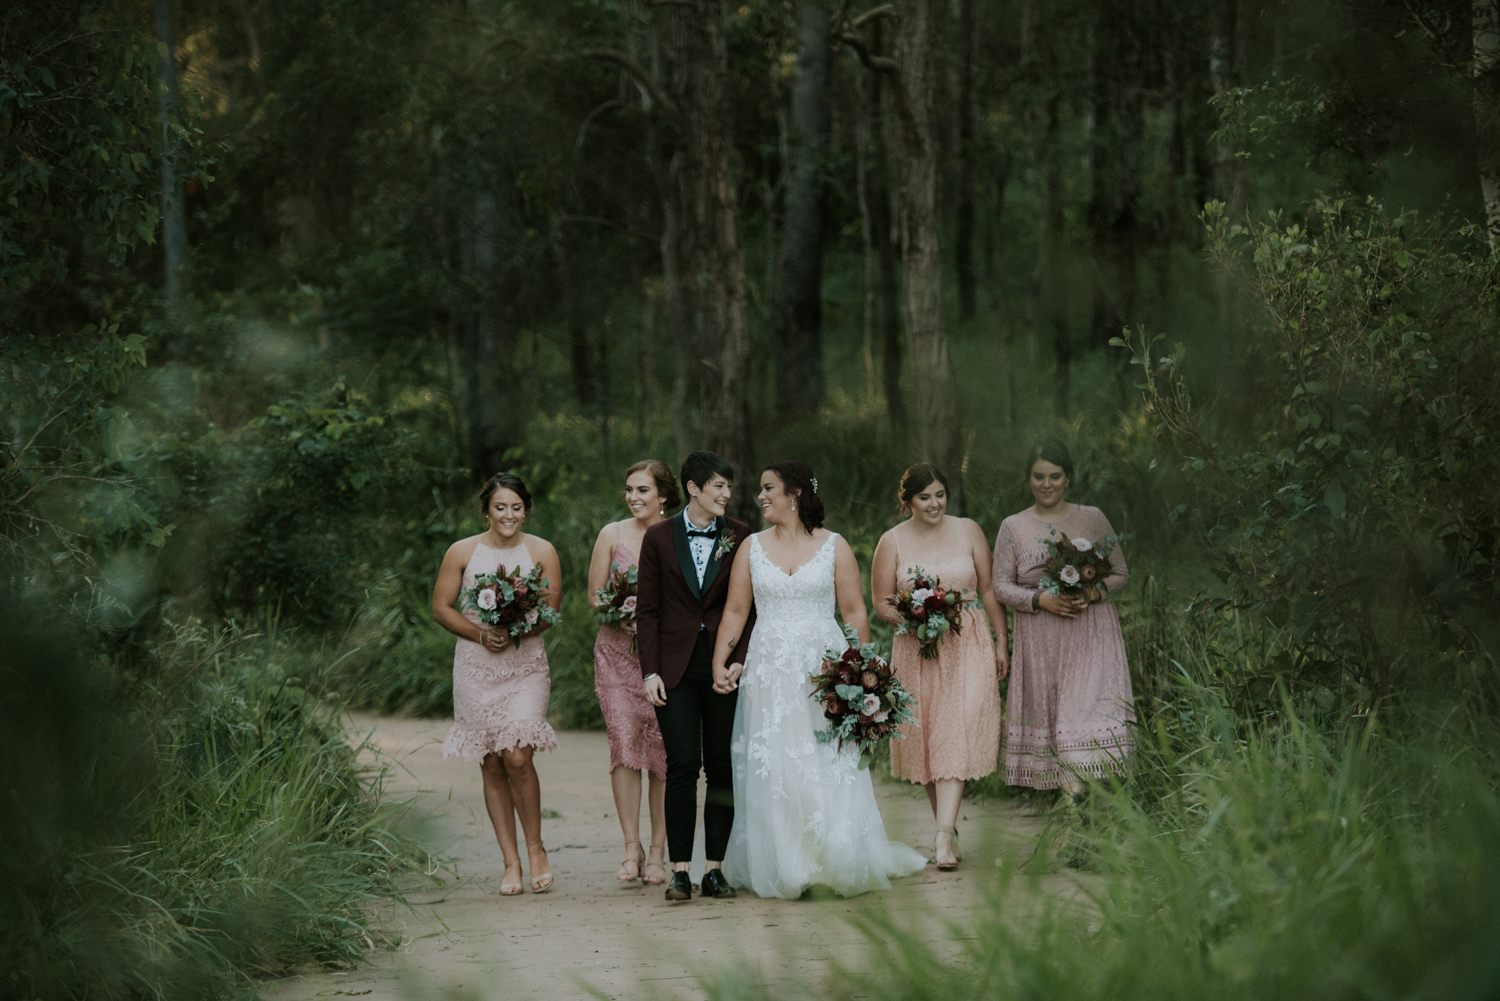 Brisbane Wedding Photographer | Walkabout Creek Photography-71.jpg